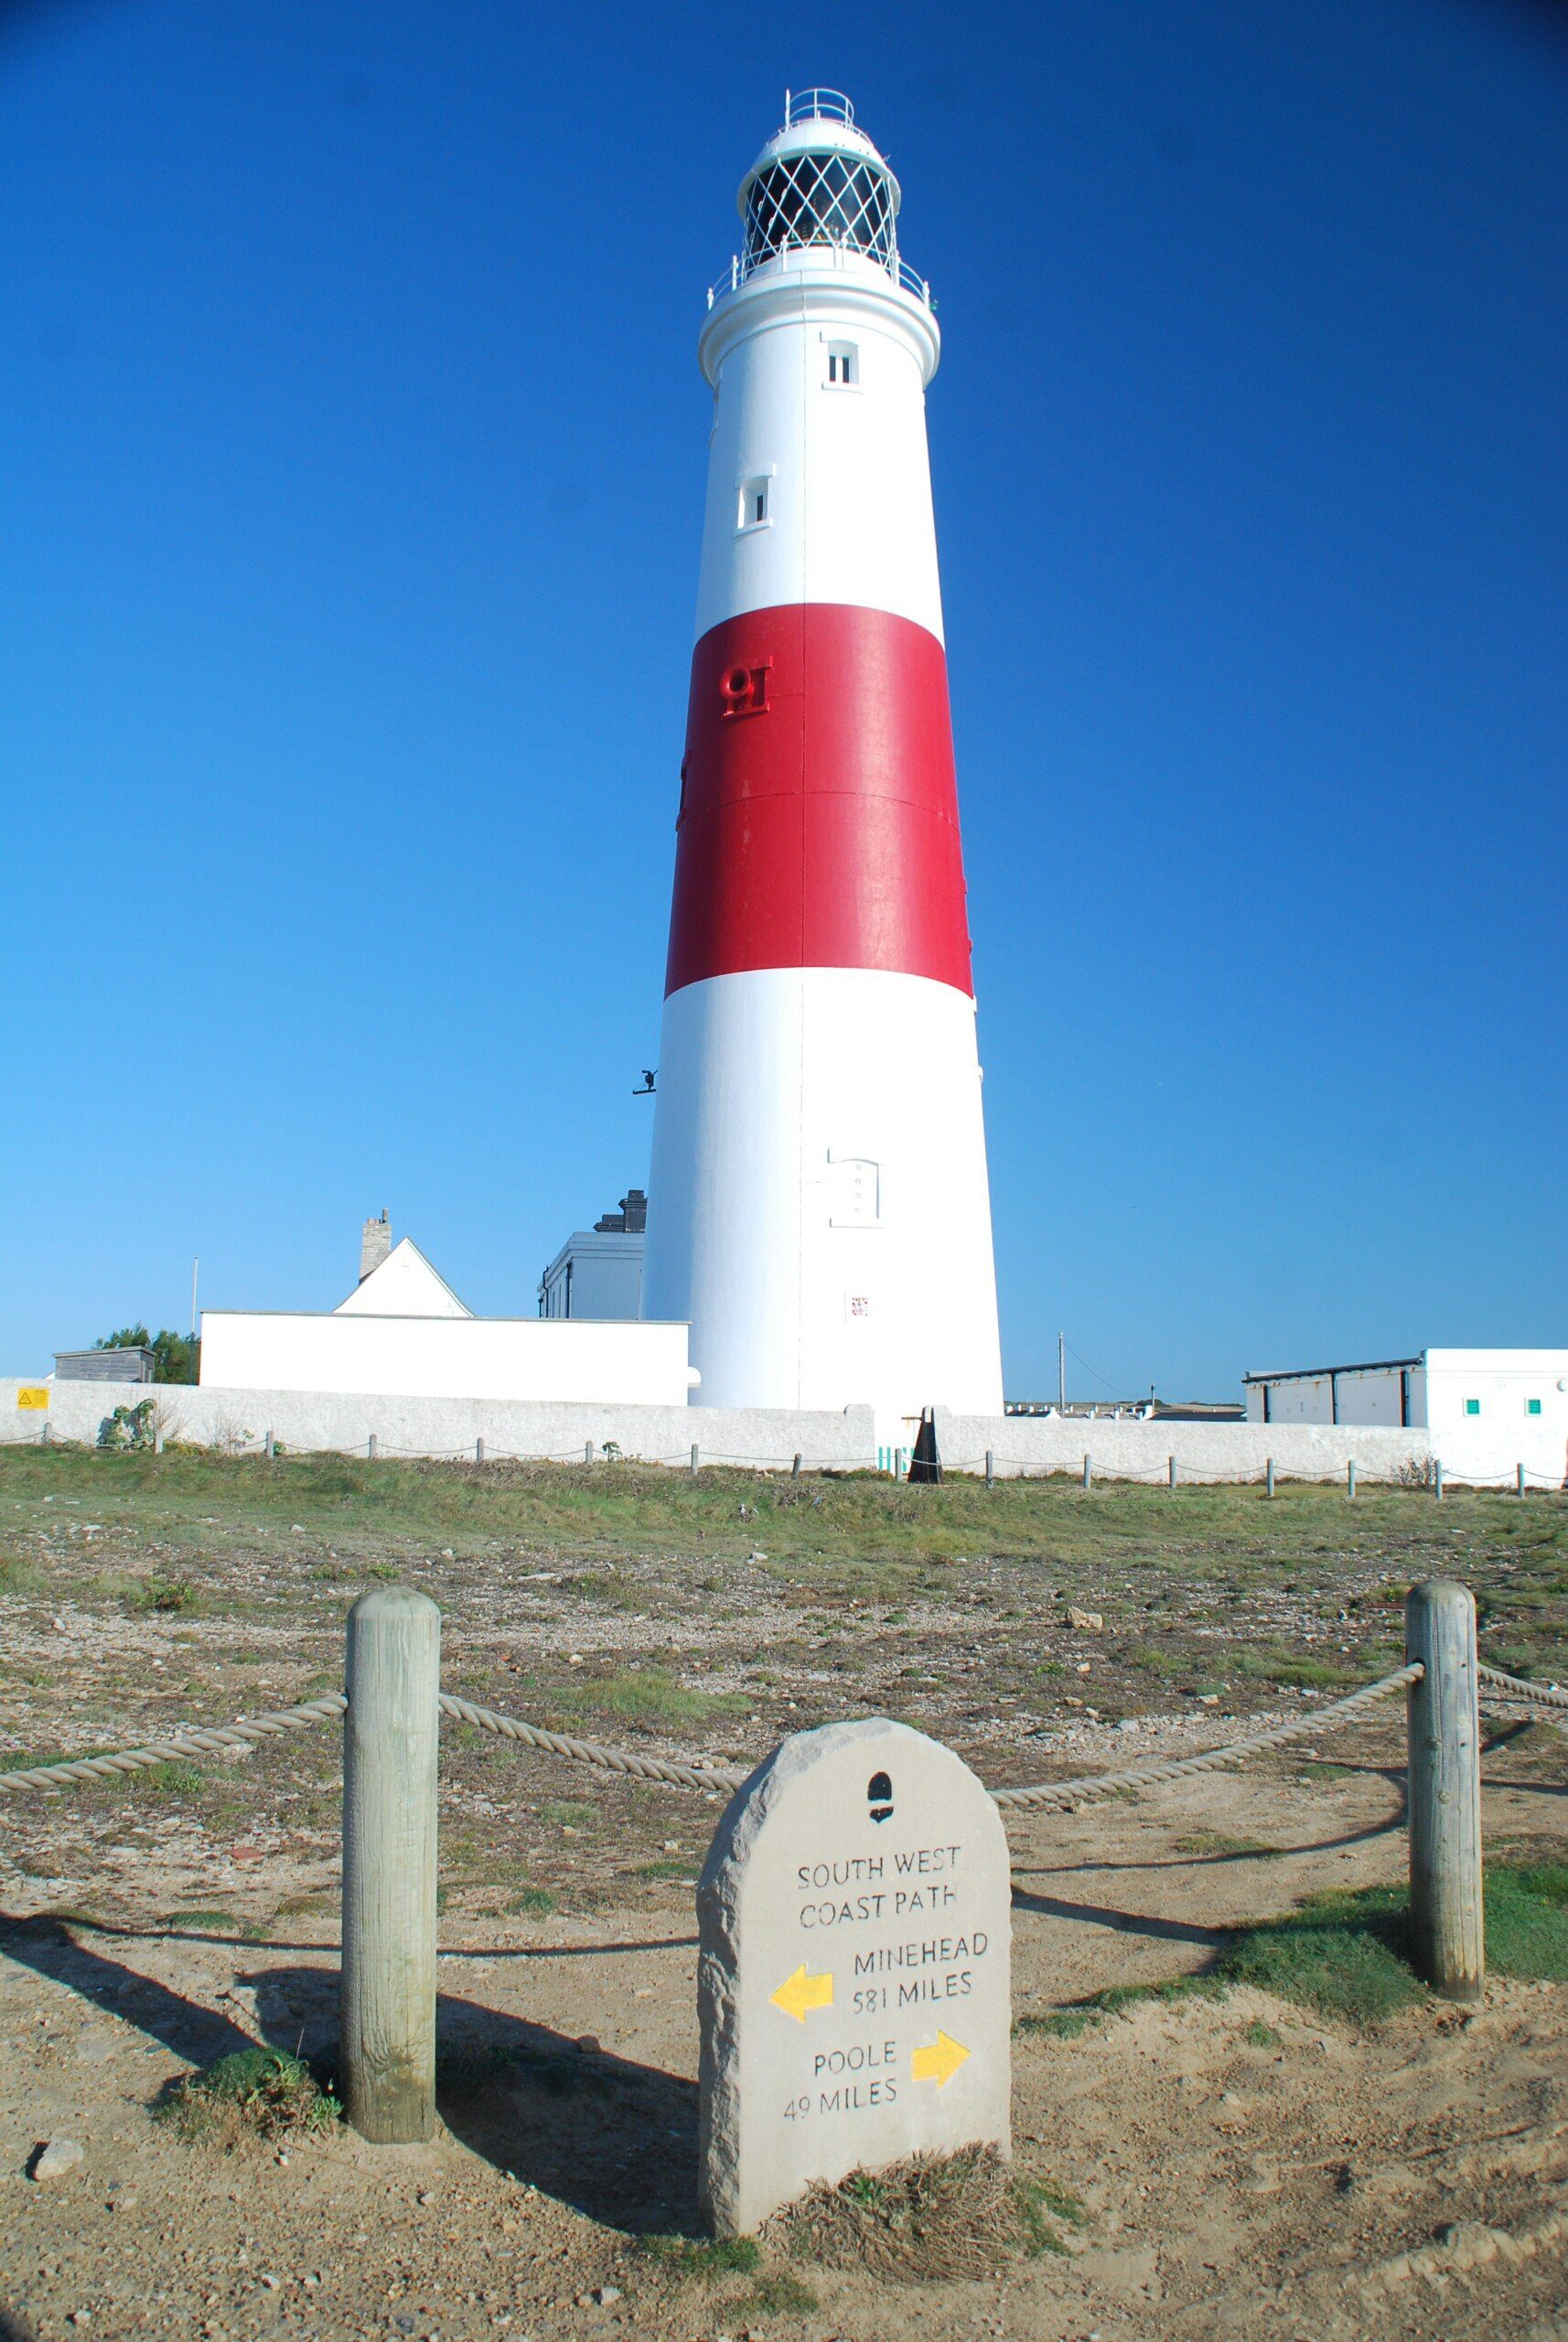 Red and white lighthouse with South-West Coast Path stone sign in foreground.